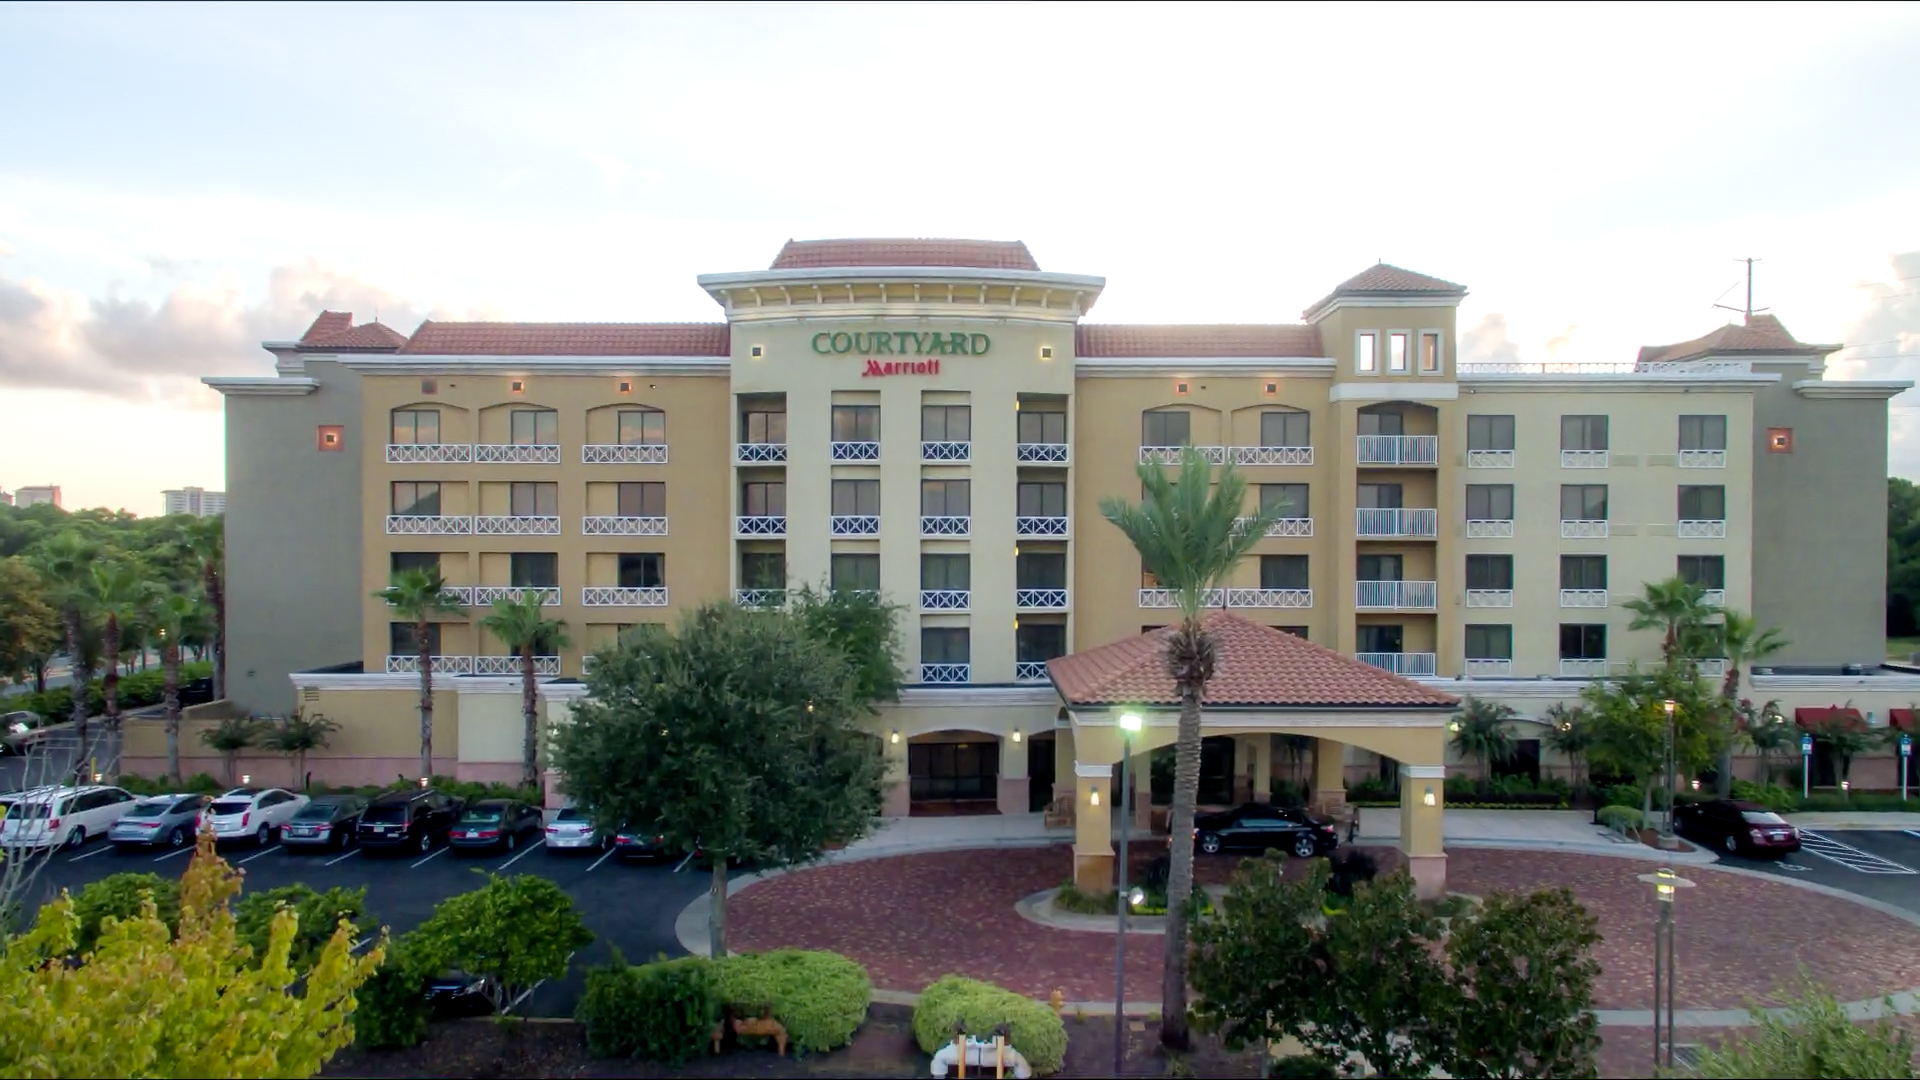 courtyard_marriott_sandestin.jpg